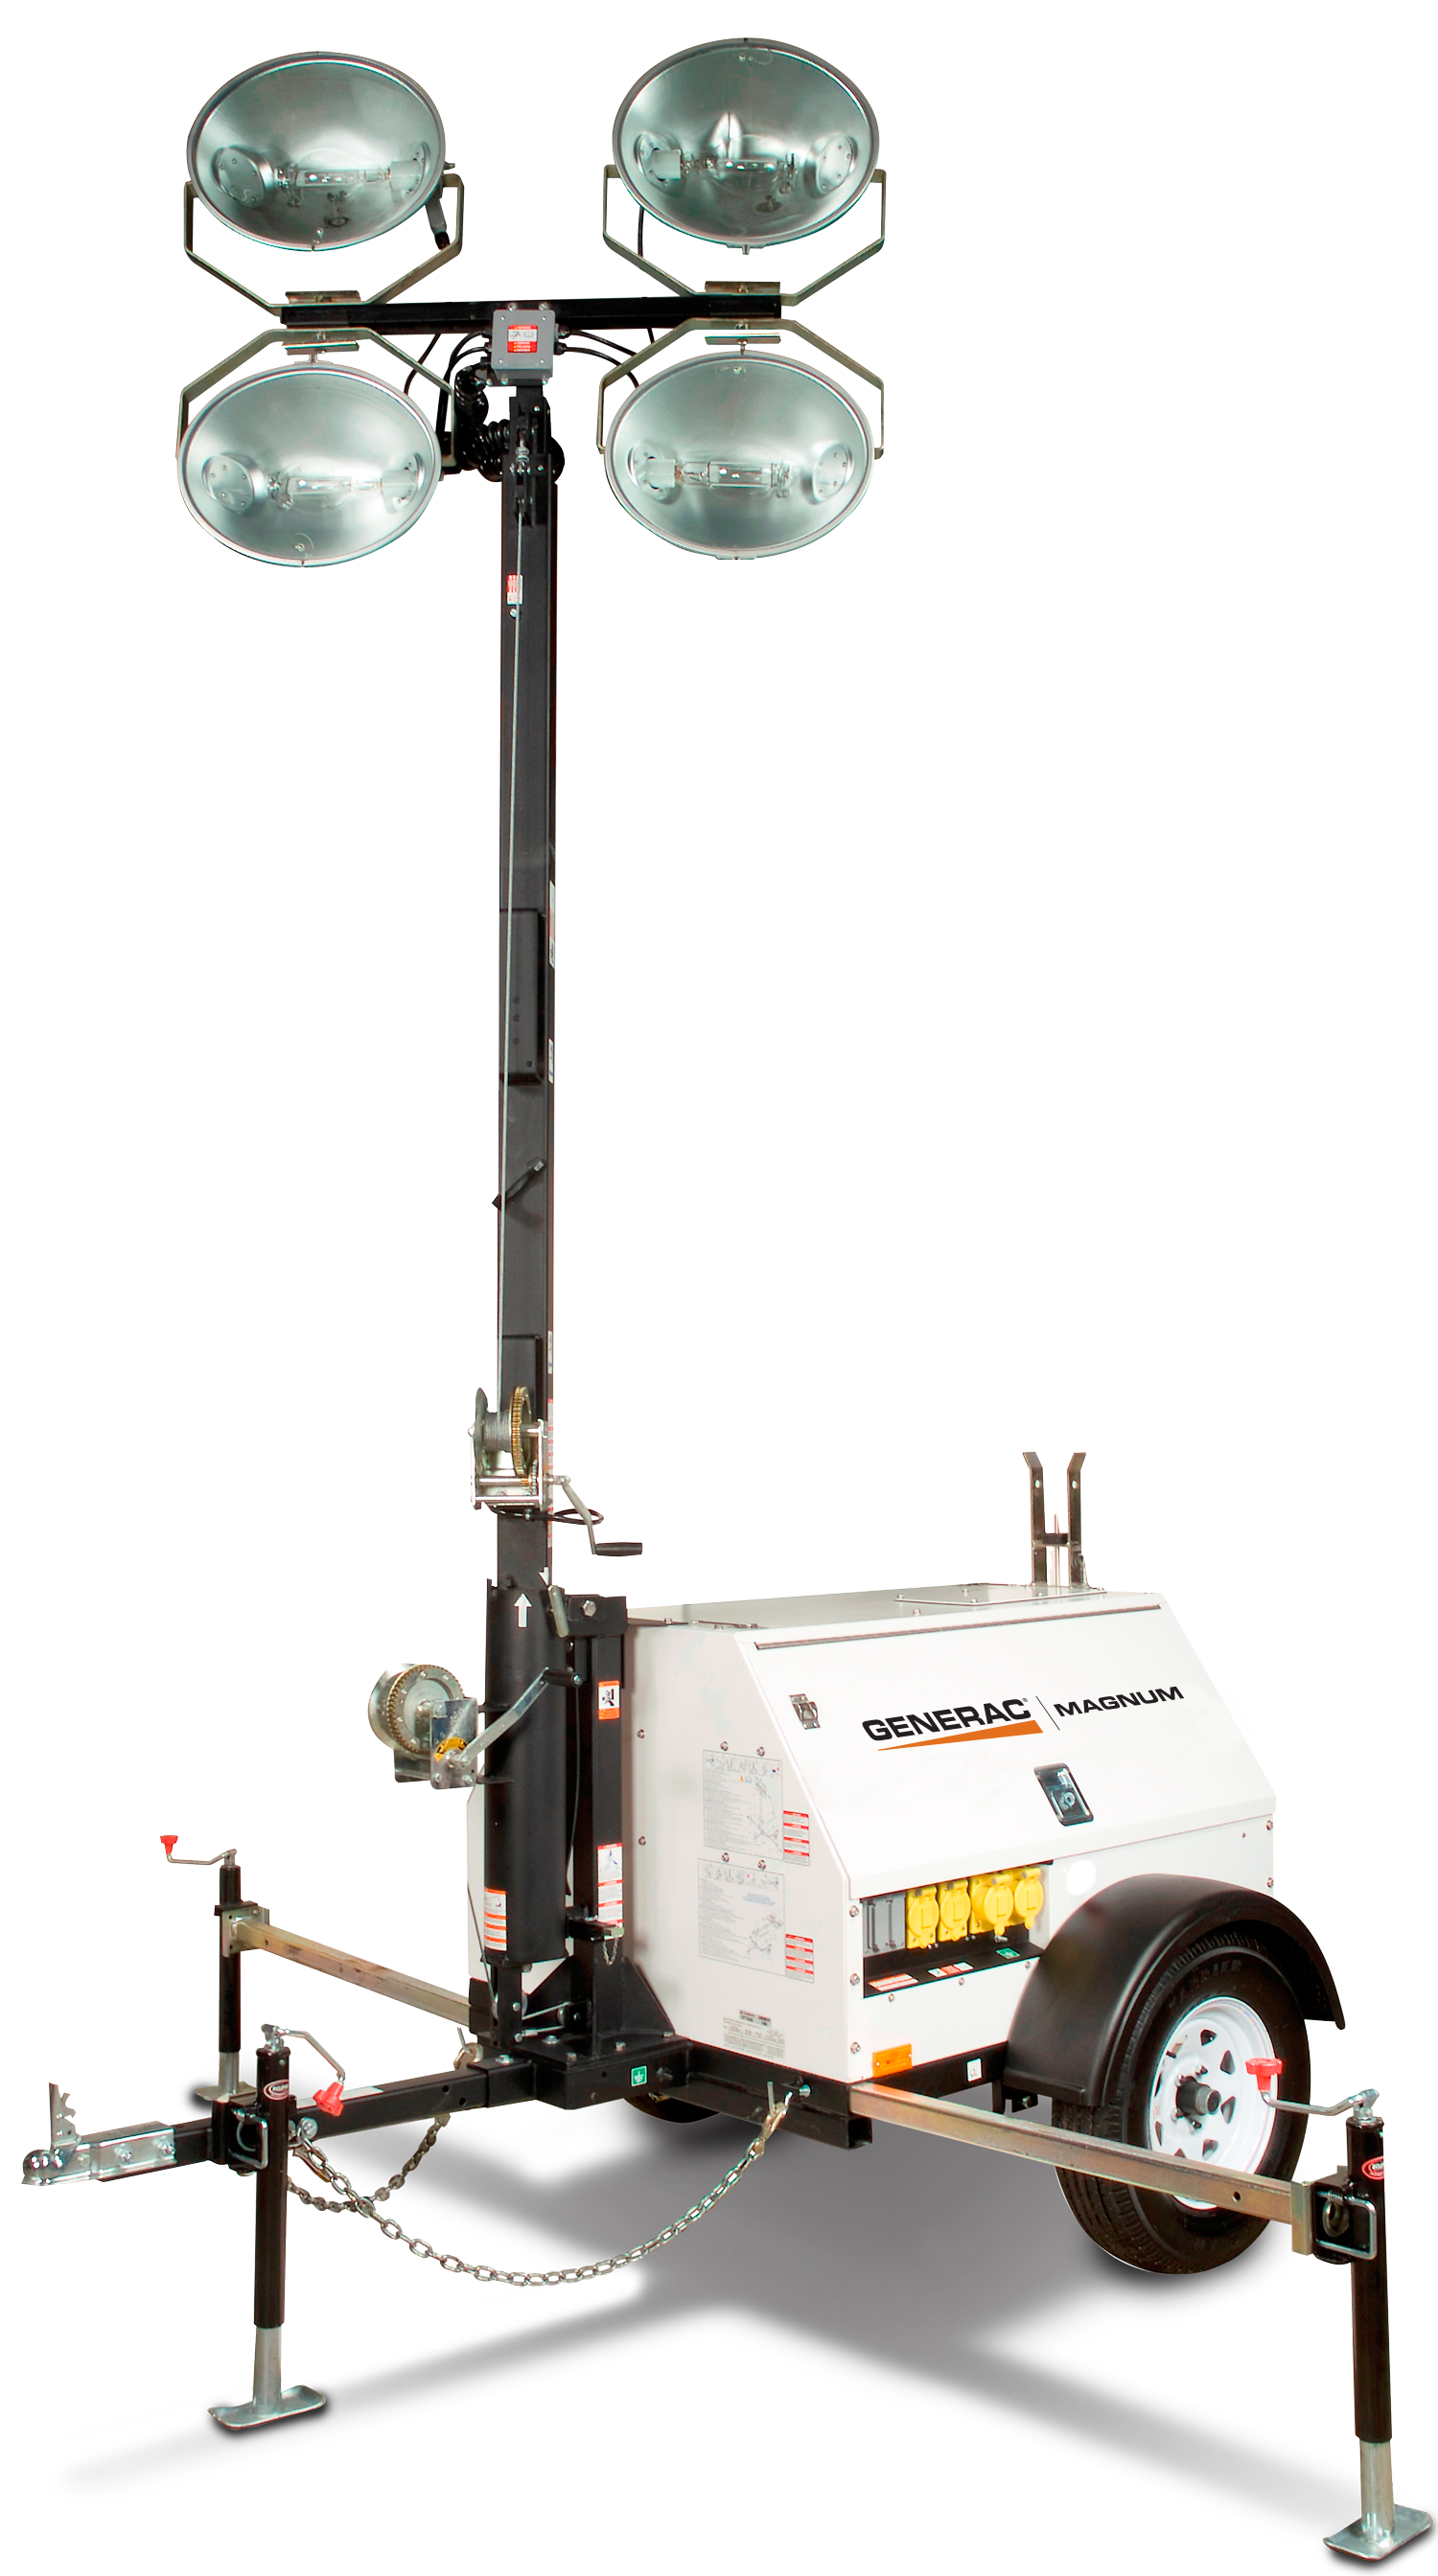 generac mlt4080 mobile metal halide light tower